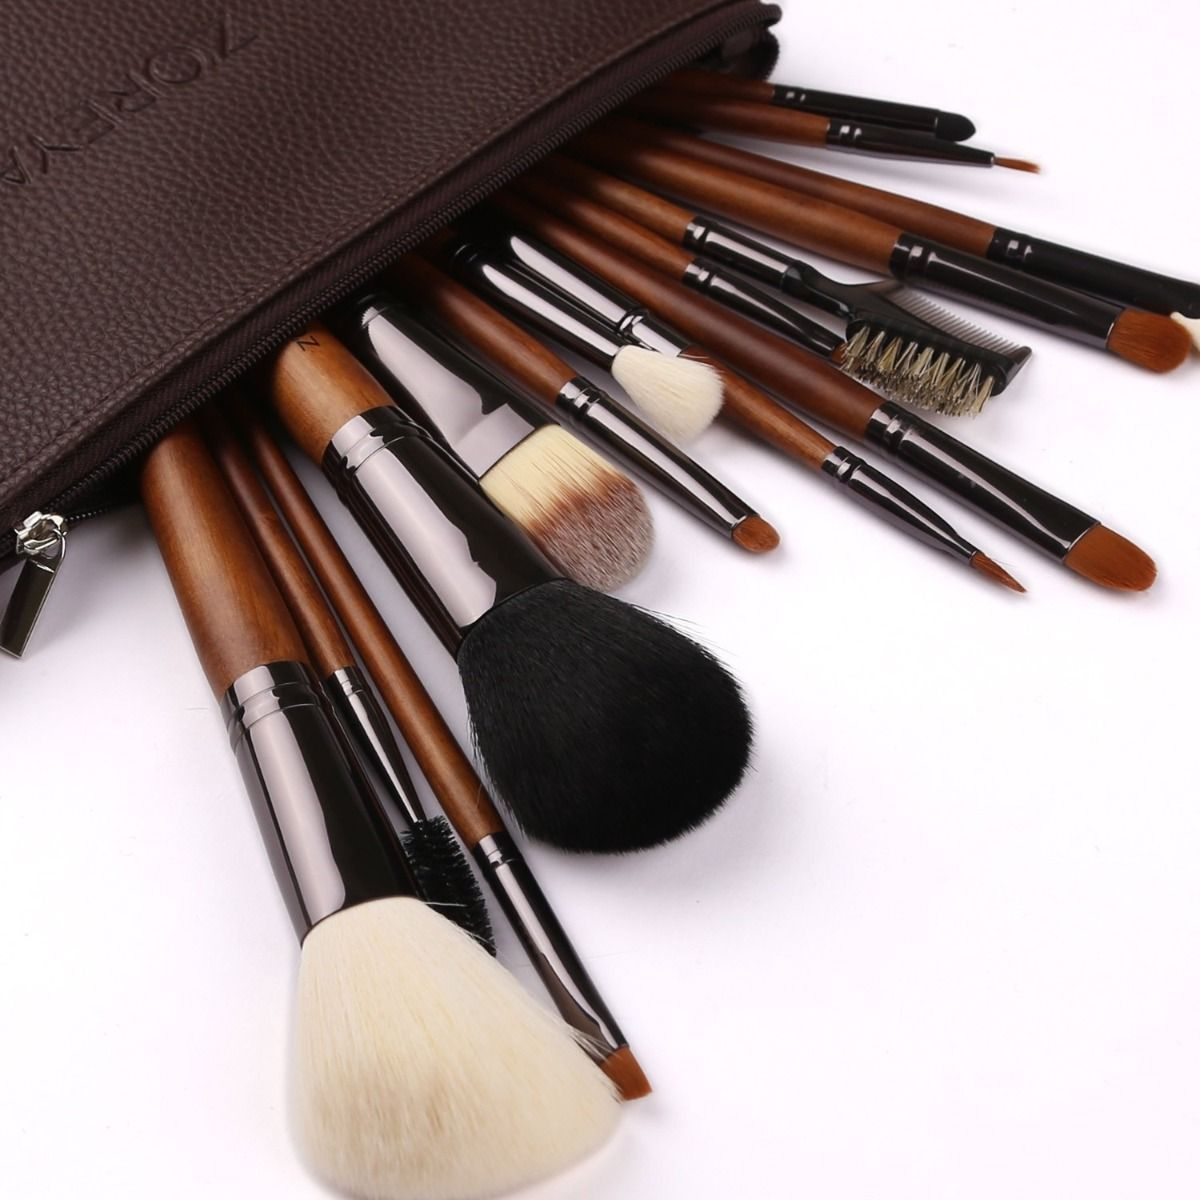 Zoreya Makeup Brushes 15pc High End Real Walnut Handle